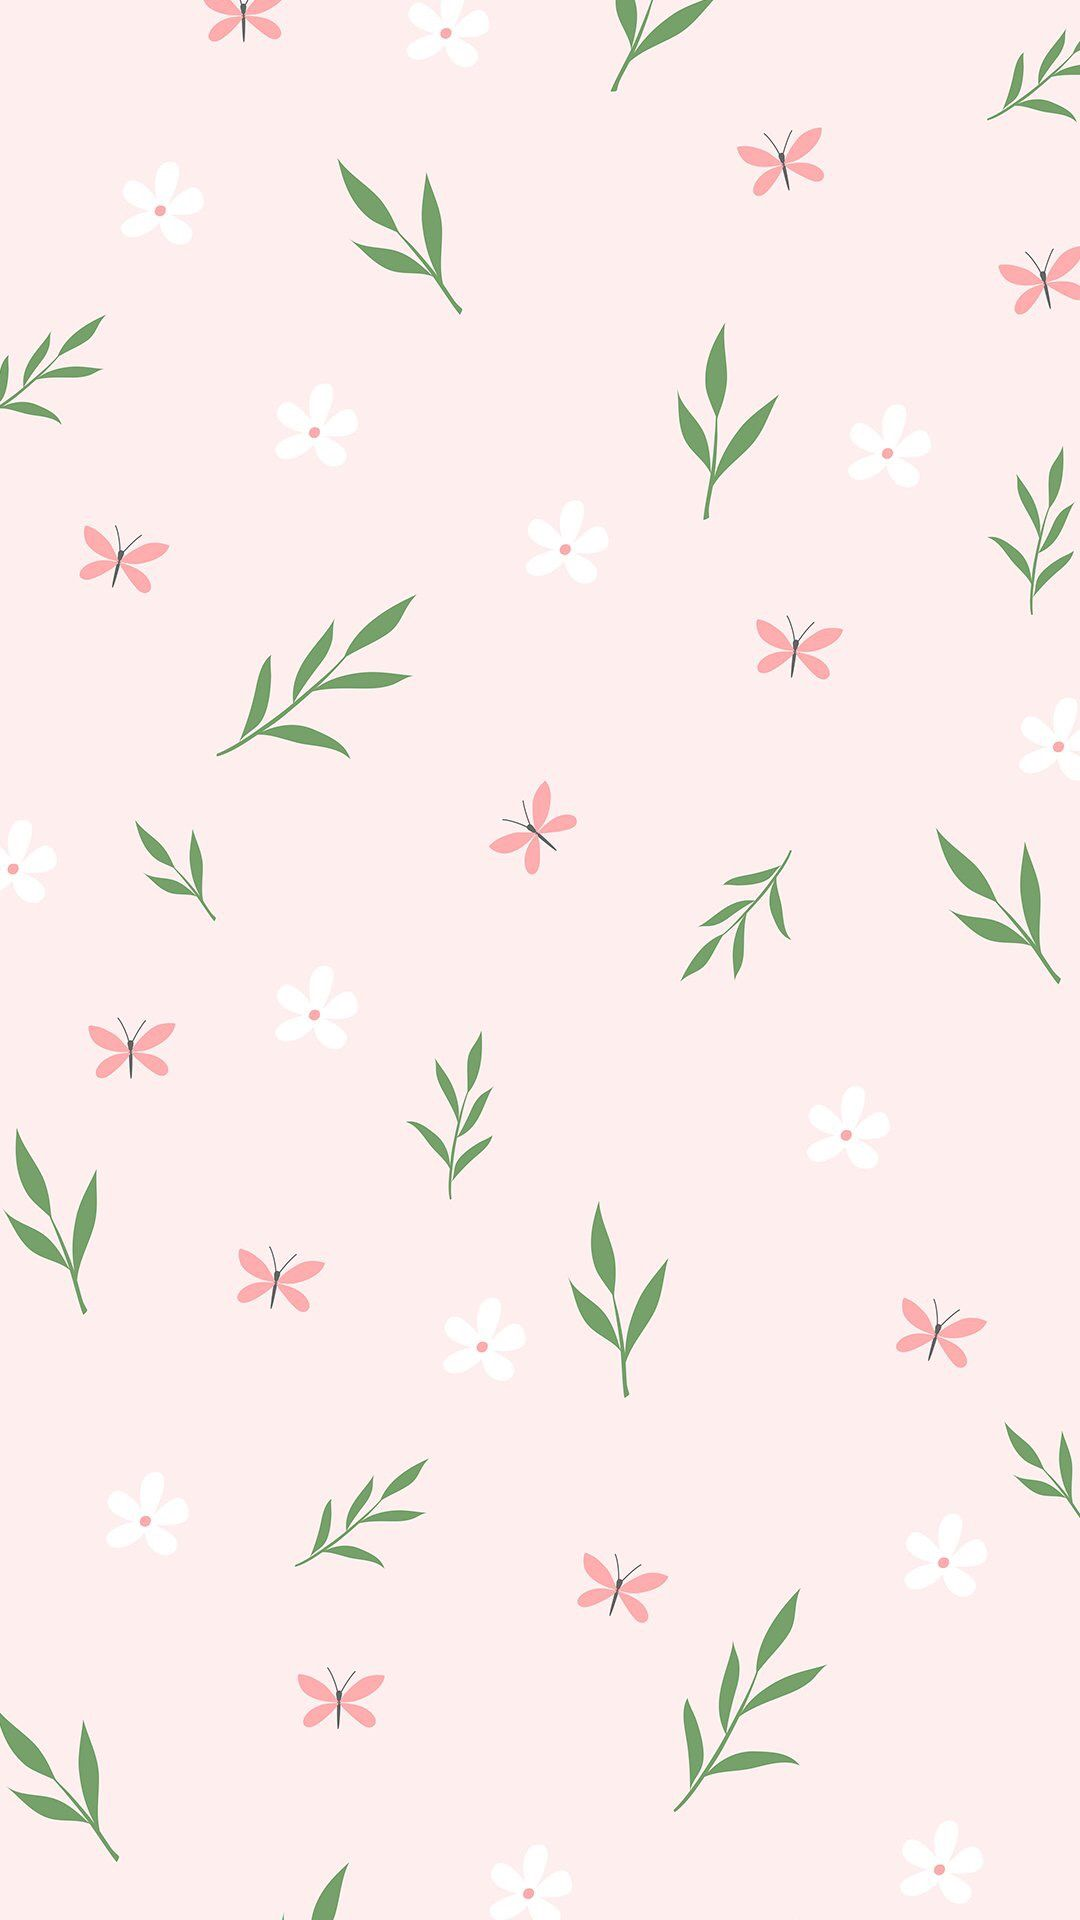 Pin by ariana on wallpapers pinterest wallpaper phone and patterns